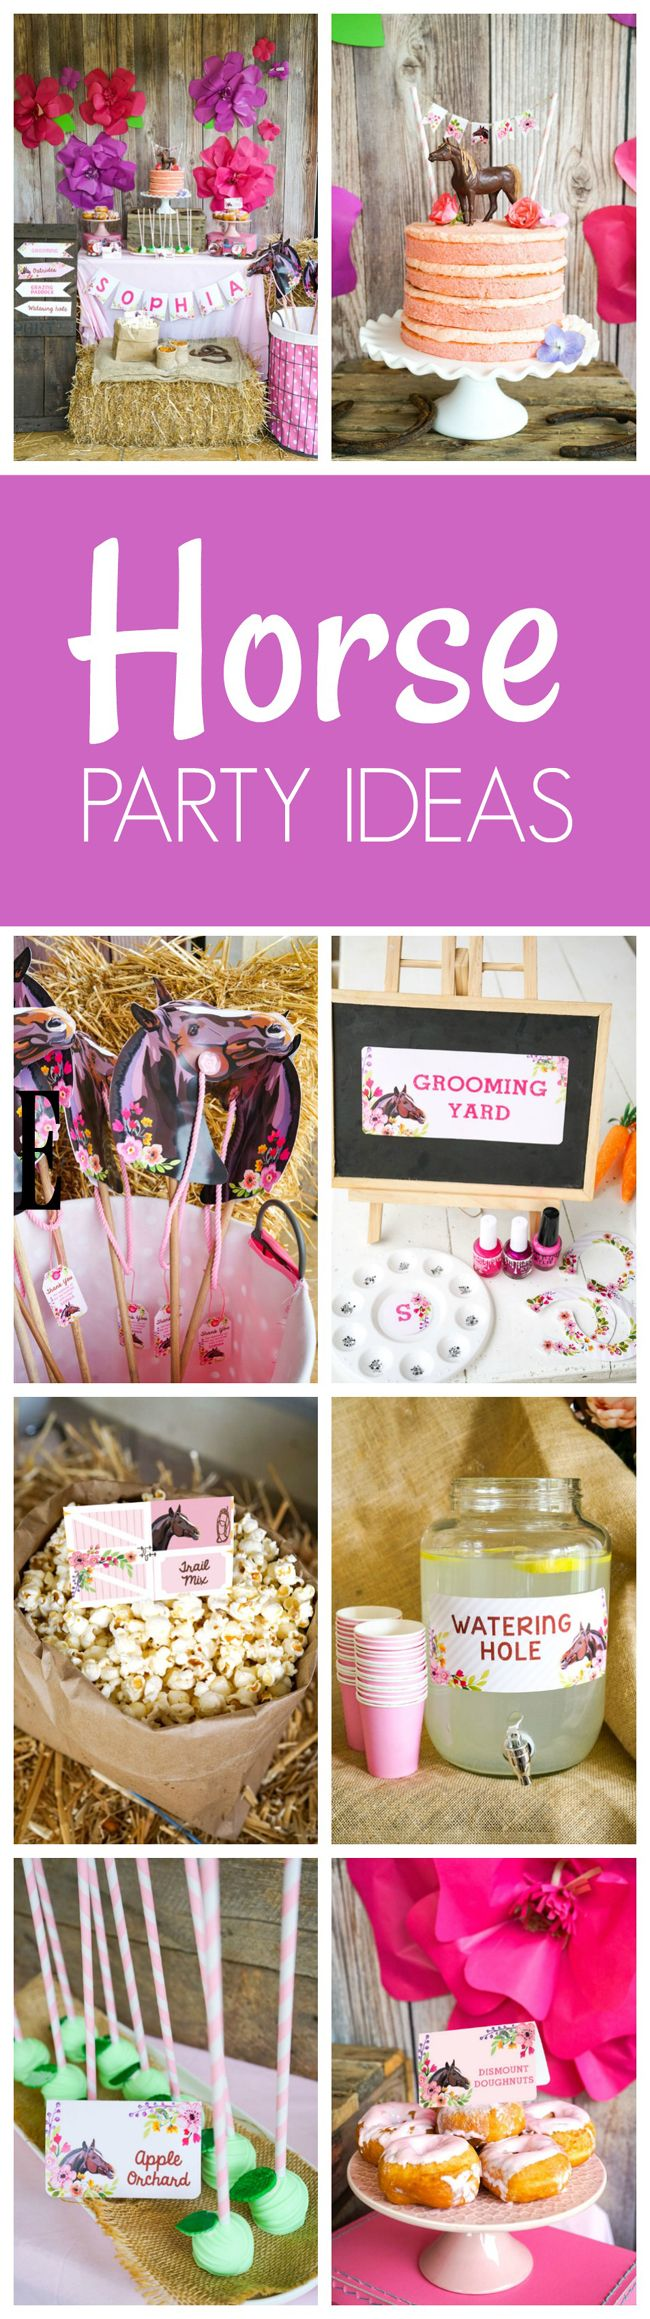 Rustic Horse Kids Birthday Party Ideas